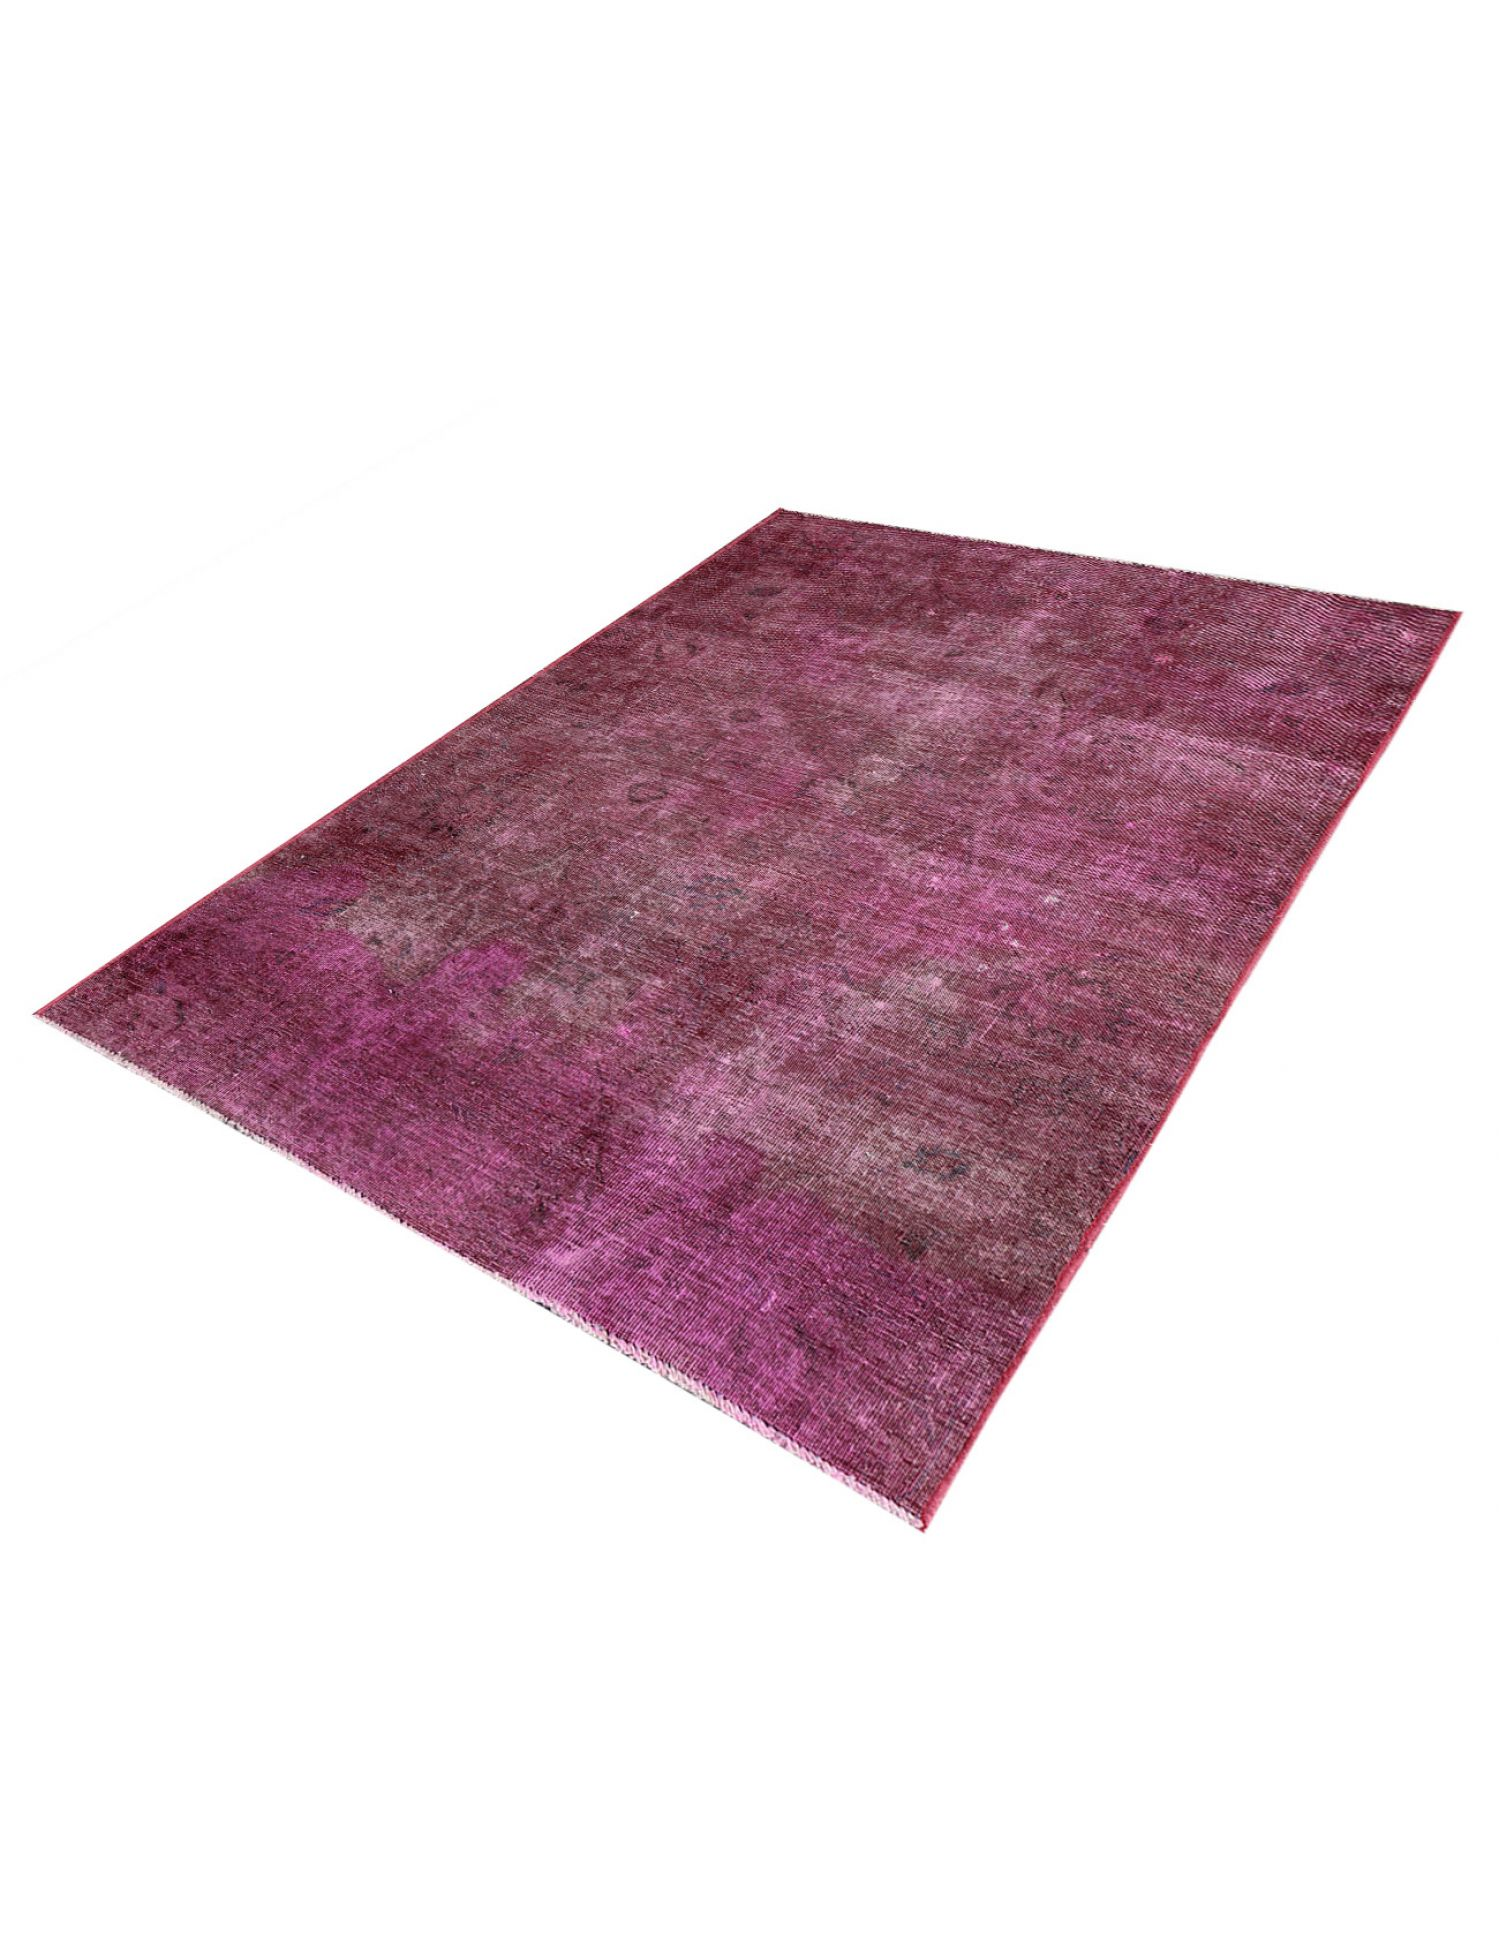 Vintage Carpet  purple <br/>246 x 127 cm